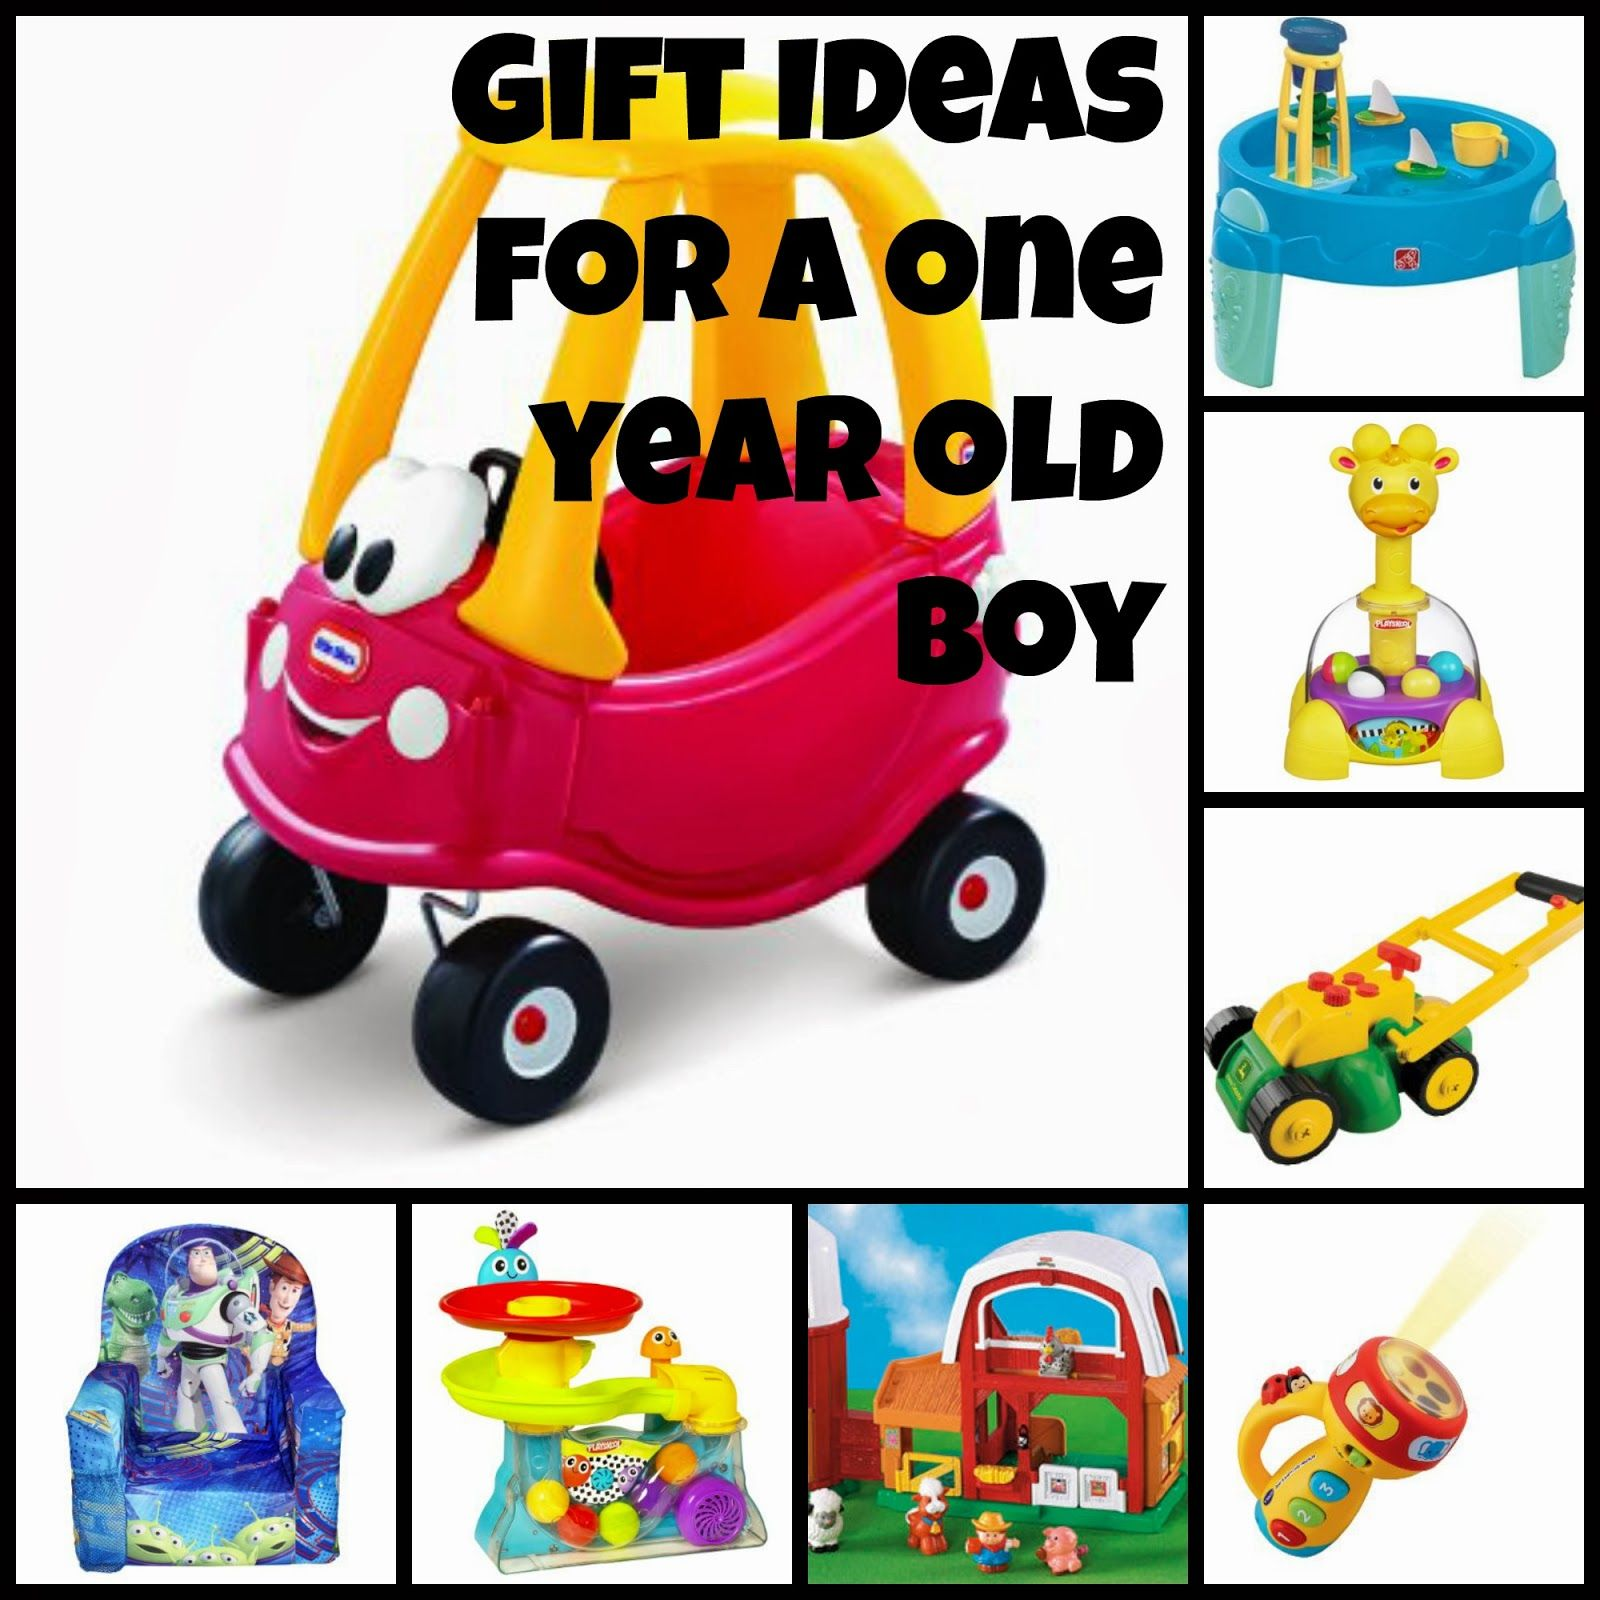 1 Year Old Christmas Gift Ideas